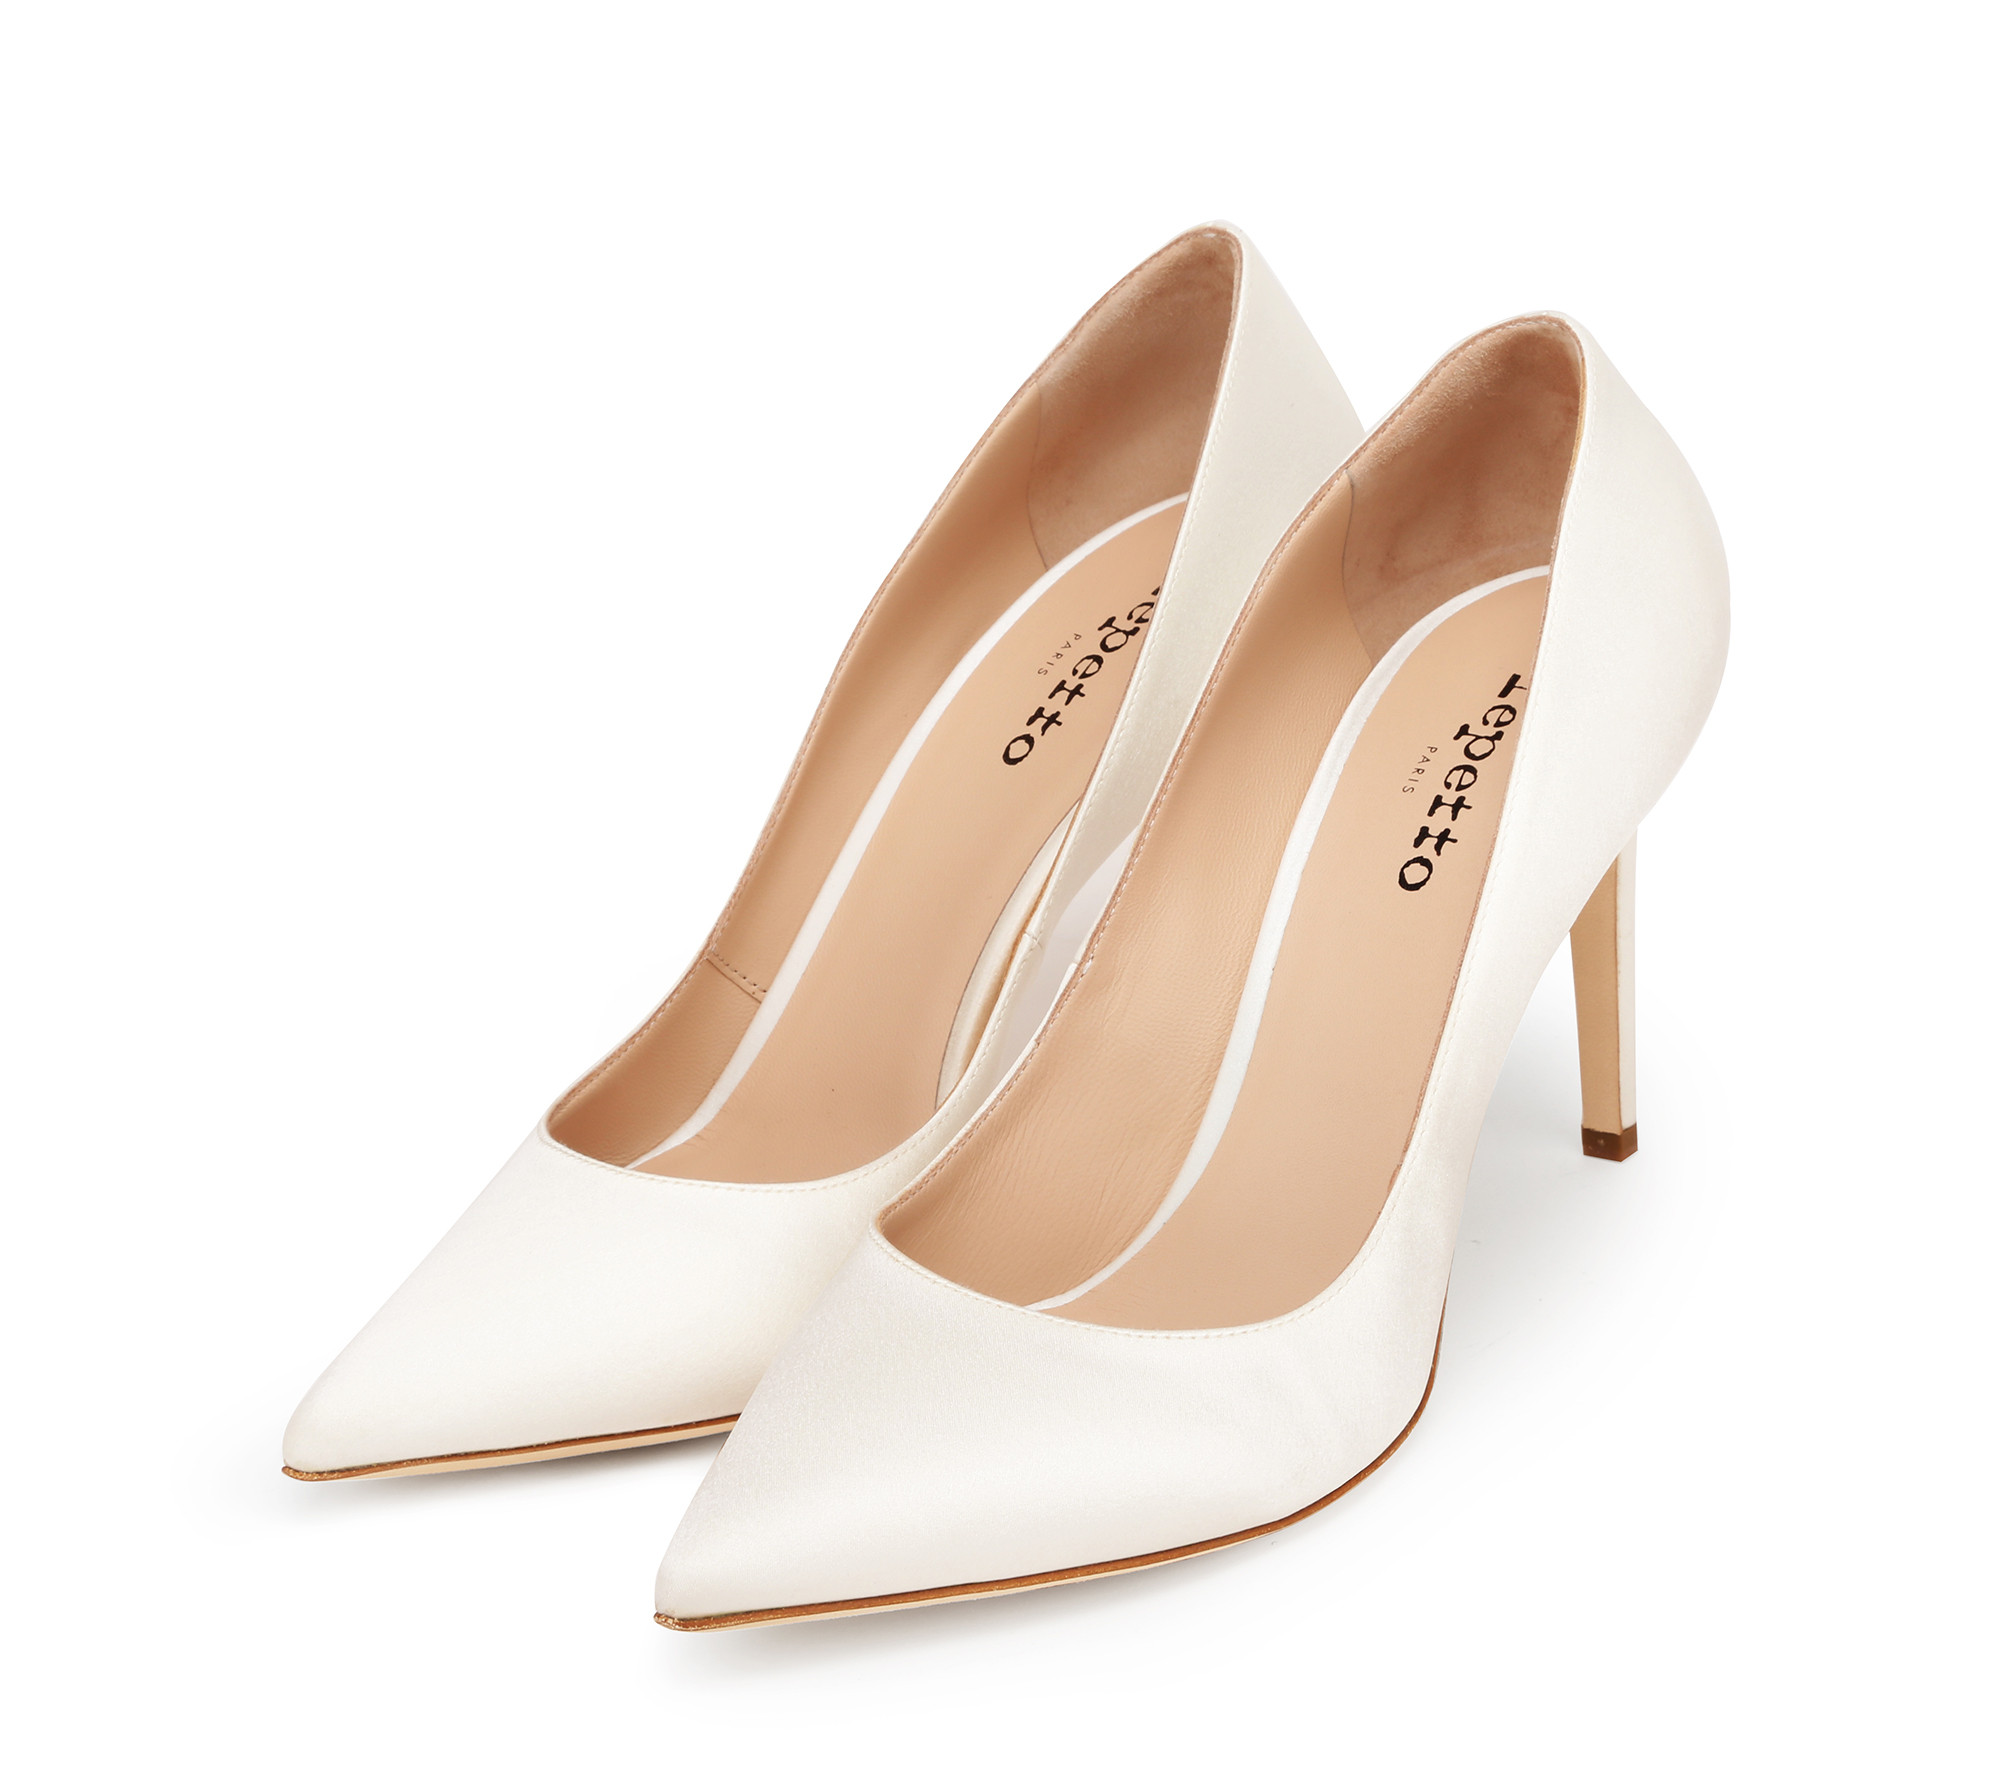 Tutu low cut pumps